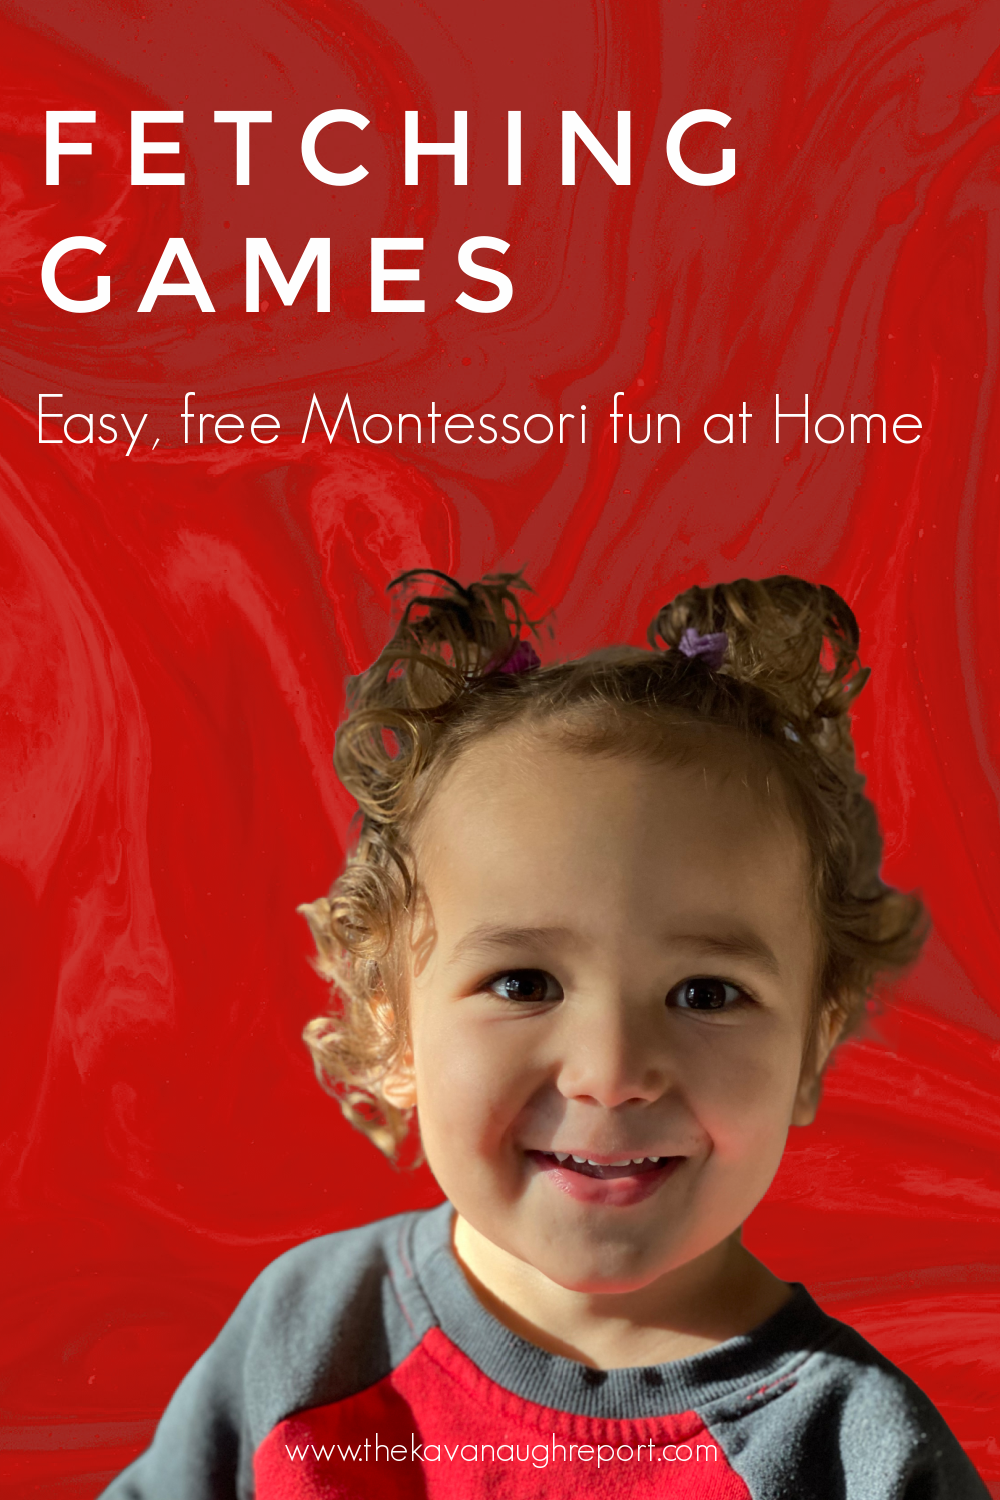 Fun, free, and educational Montessori games for preschoolers. These movement friendly games are perfect for learning math and language at home.